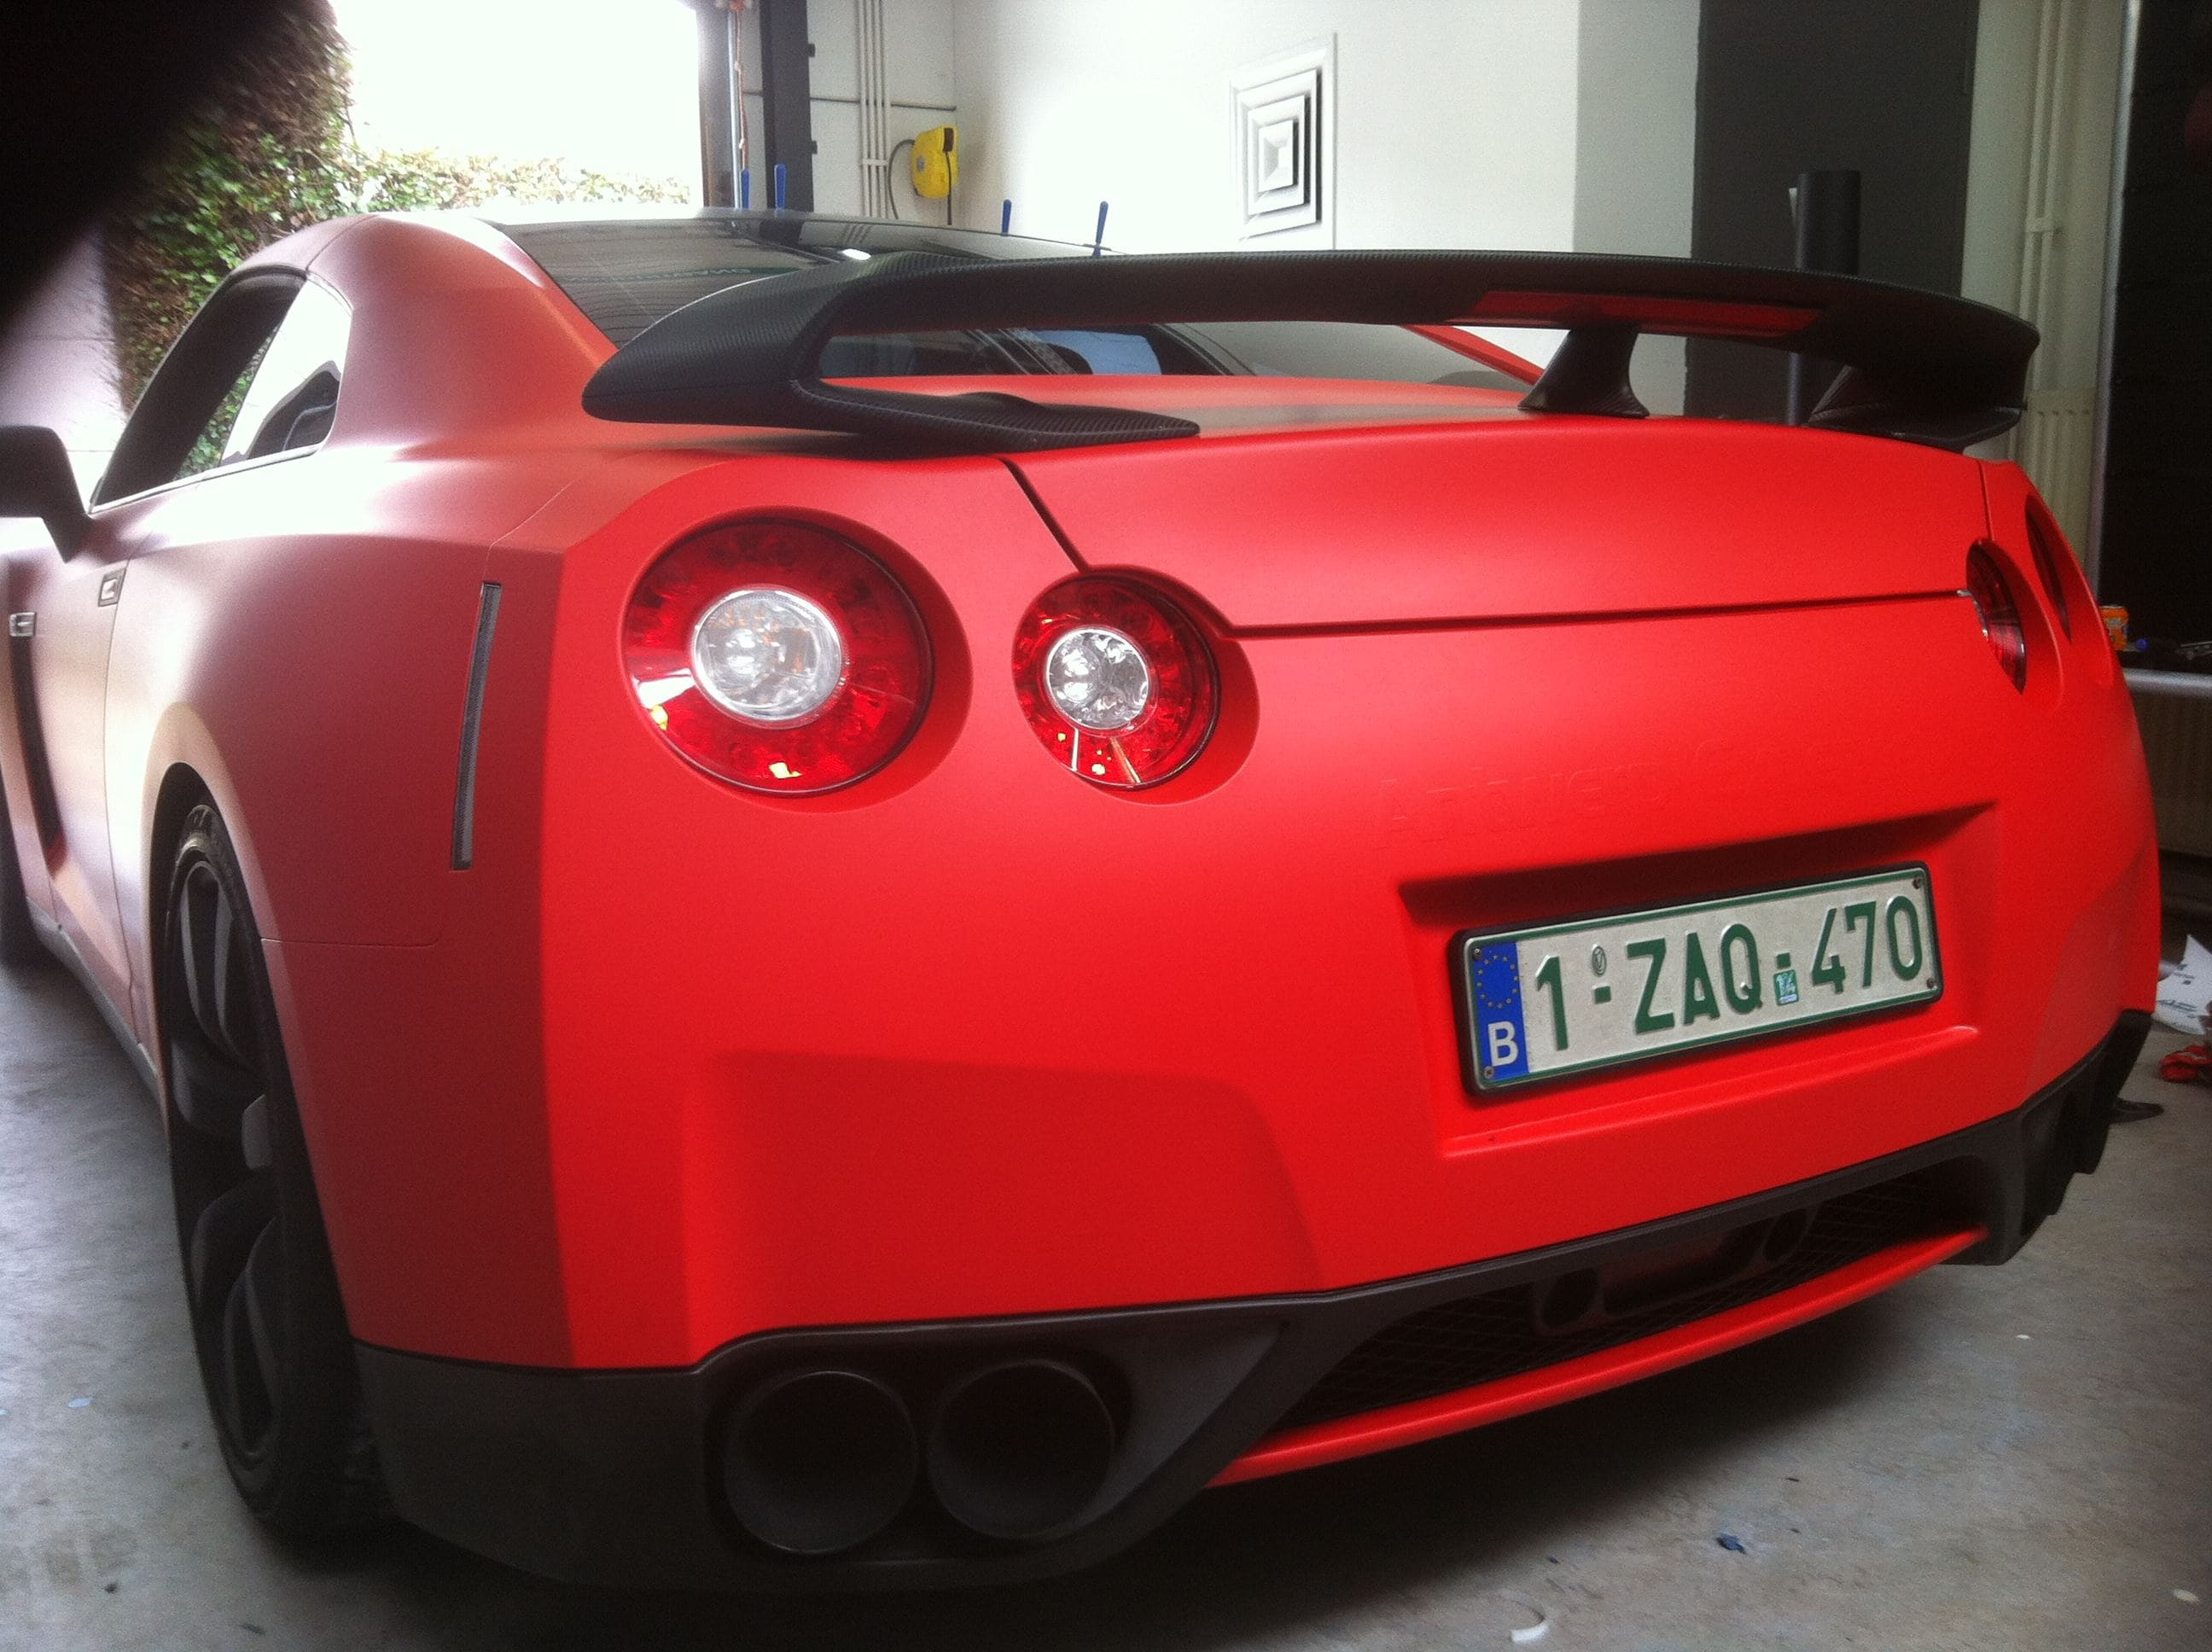 Nissan GT-R in Hotrod Rode Wrap, Carwrapping door Wrapmyride.nu Foto-nr:6497, ©2021